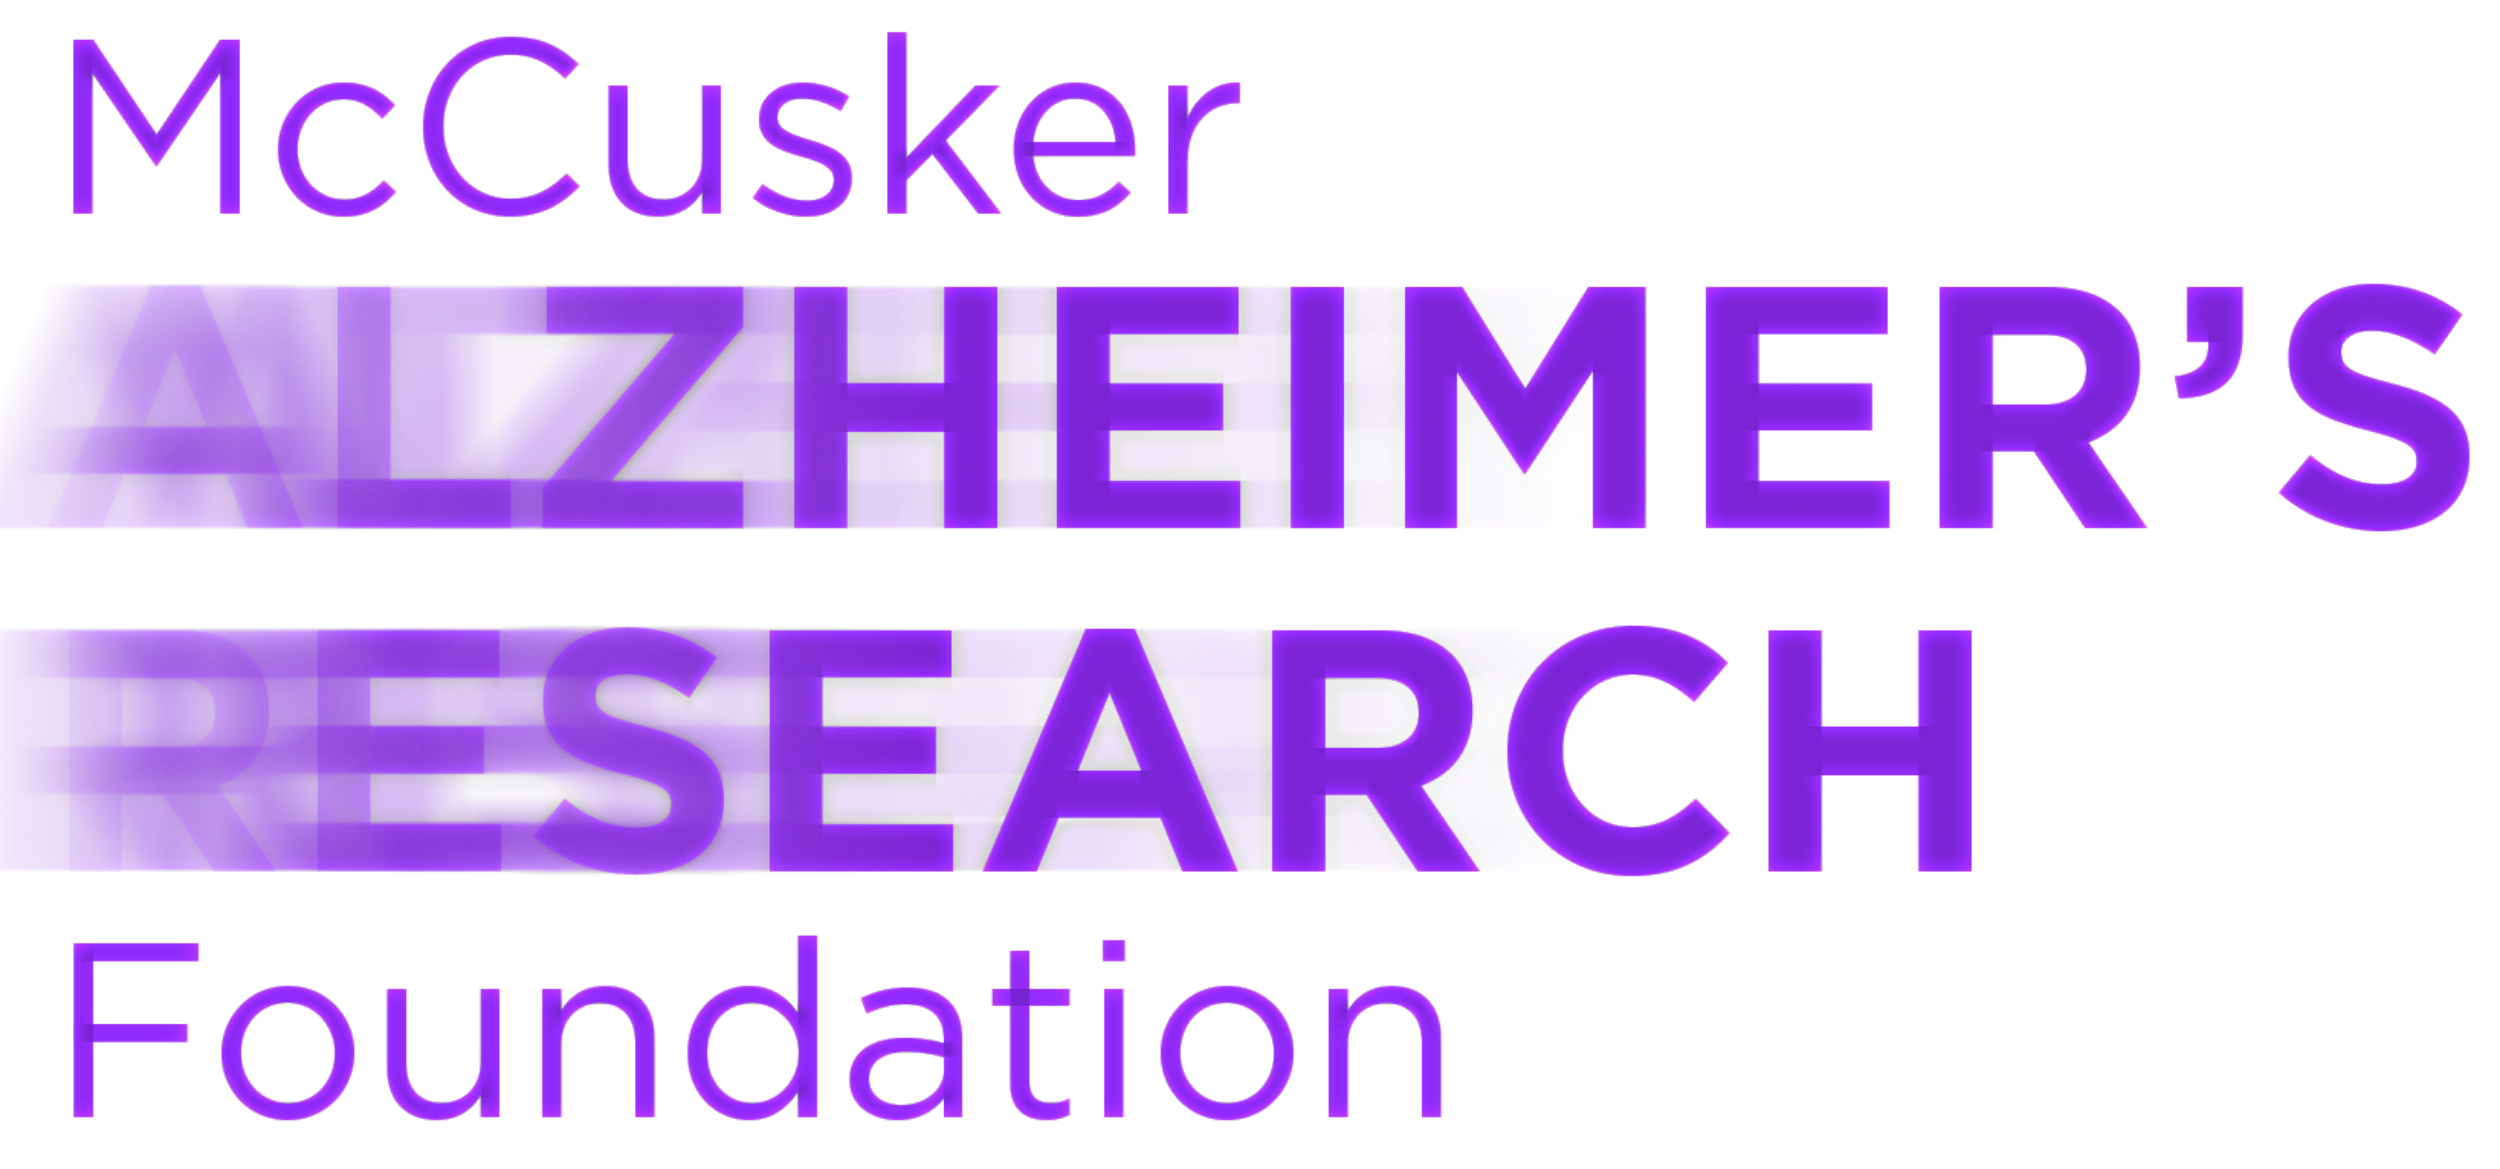 McCusker Alzheimer's Research Foundation